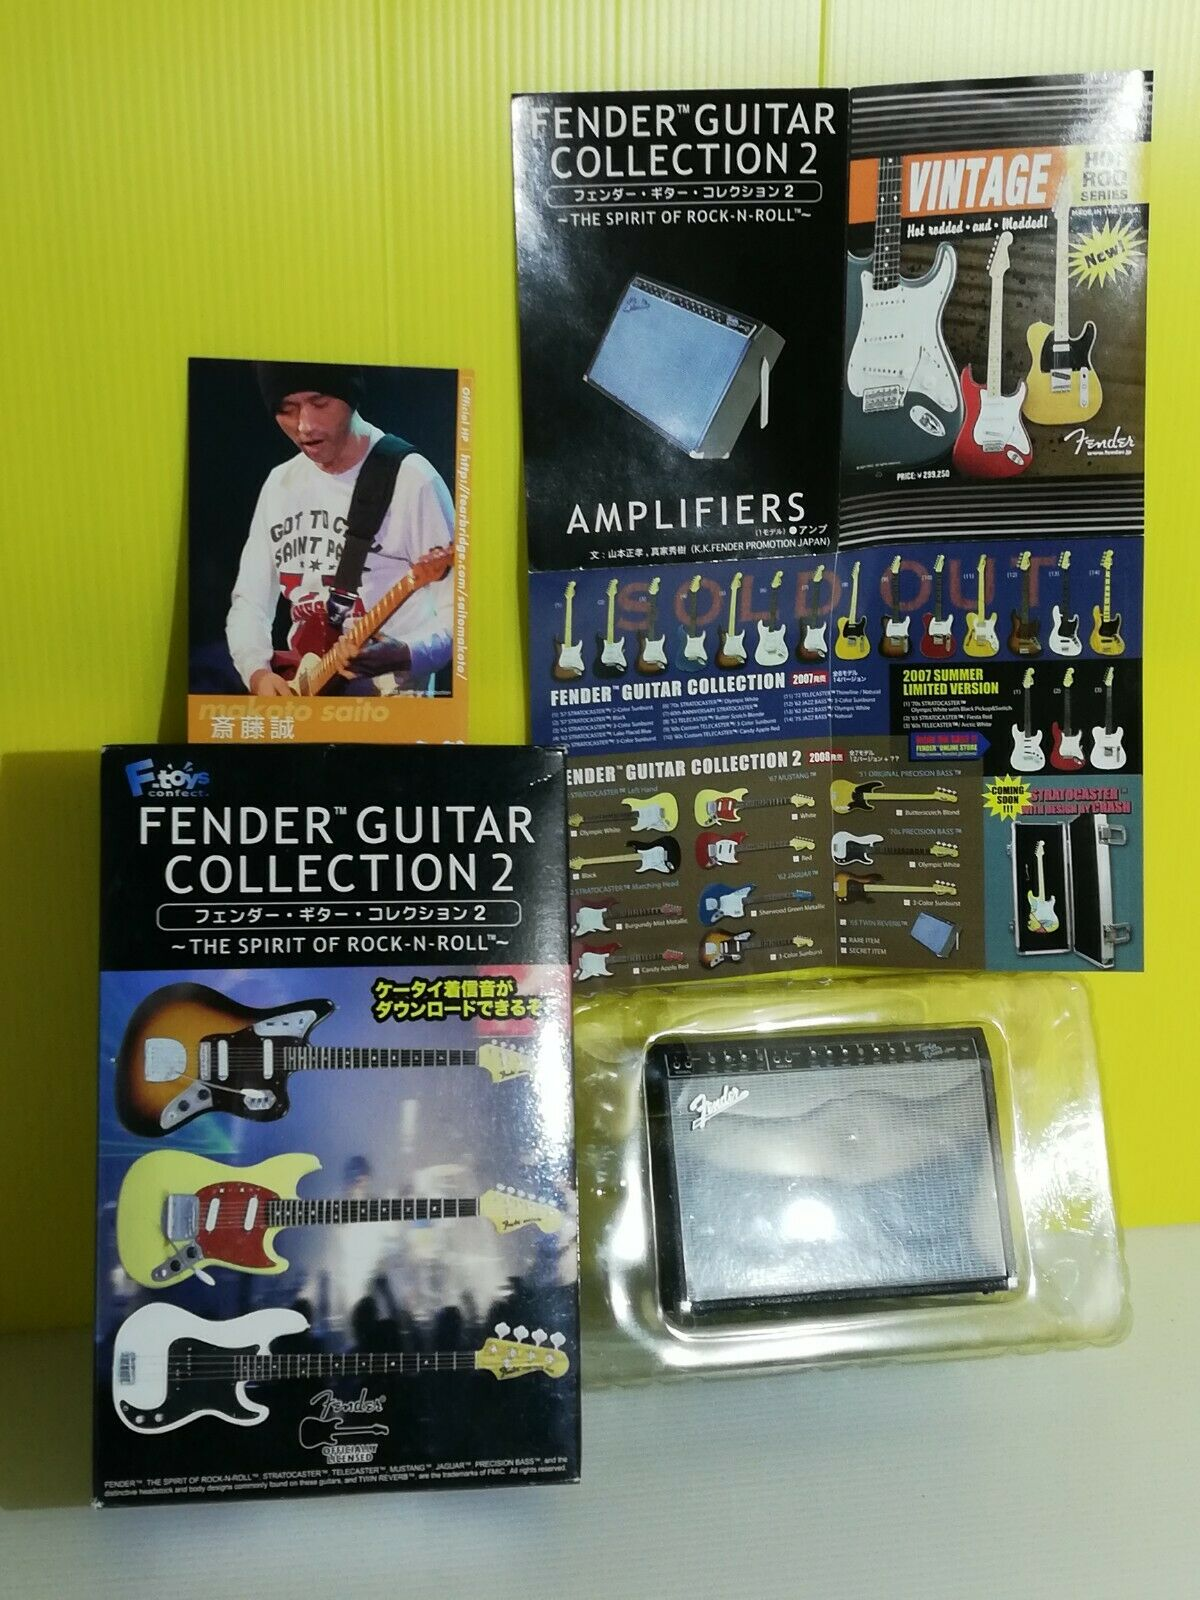 F-Toys 1 8 Fender Guitar Collection 2 AMPLIFIERS Model Kit